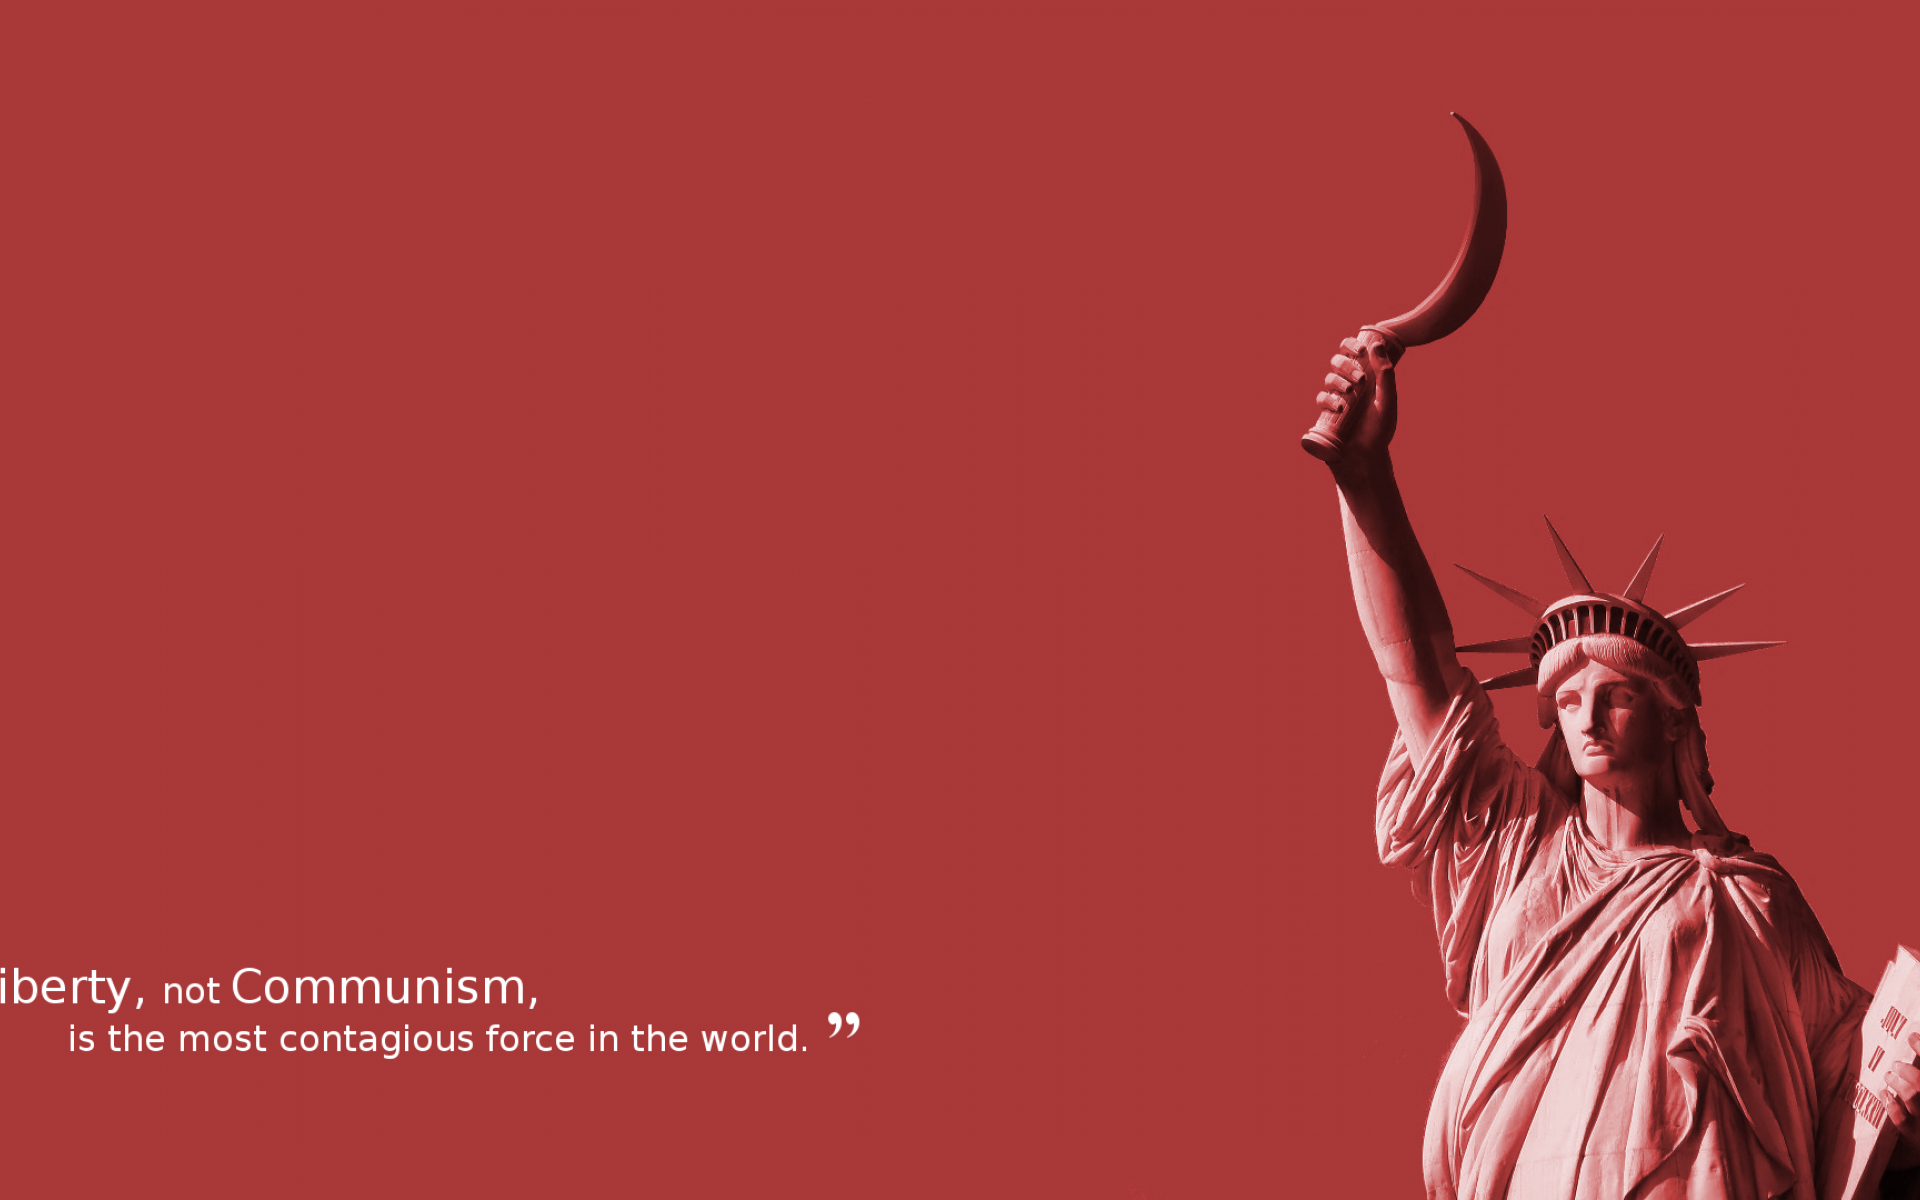 Communism Desktop Wallpapers : 27494031 Communism Backgrounds